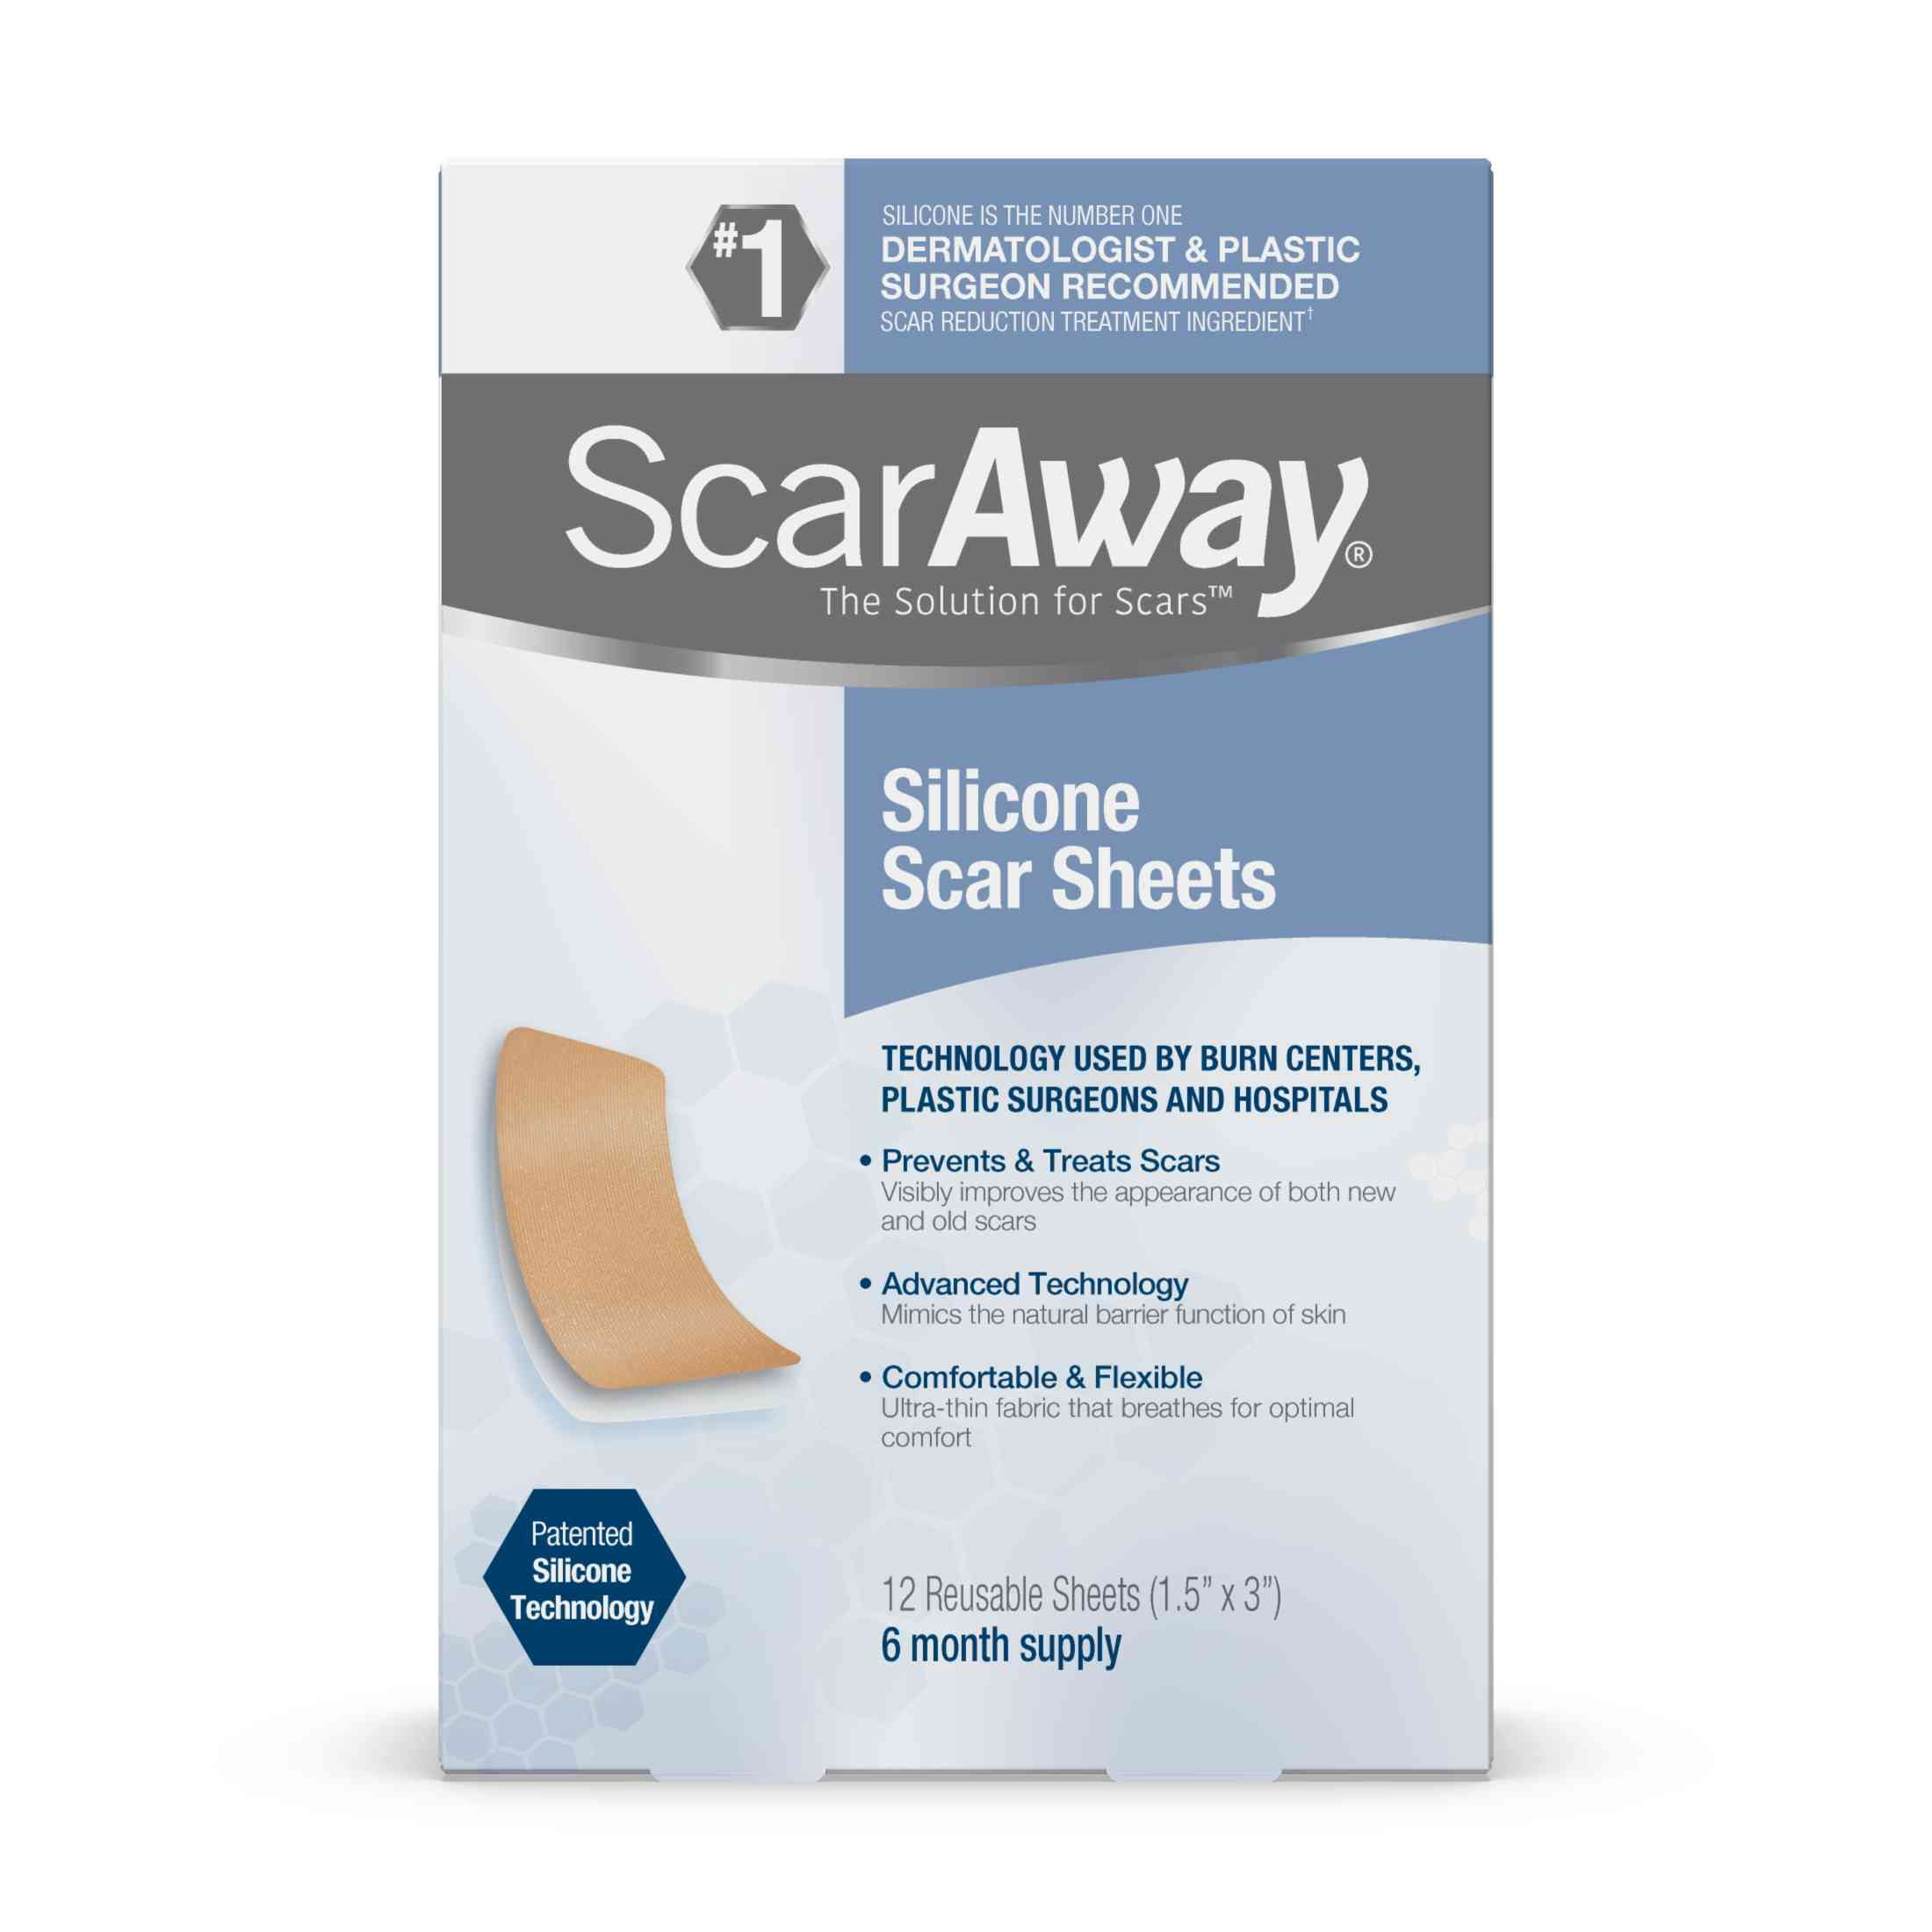 Scaraway Silicone Scar Sheets 6 Month Supply 12 Reusable ...